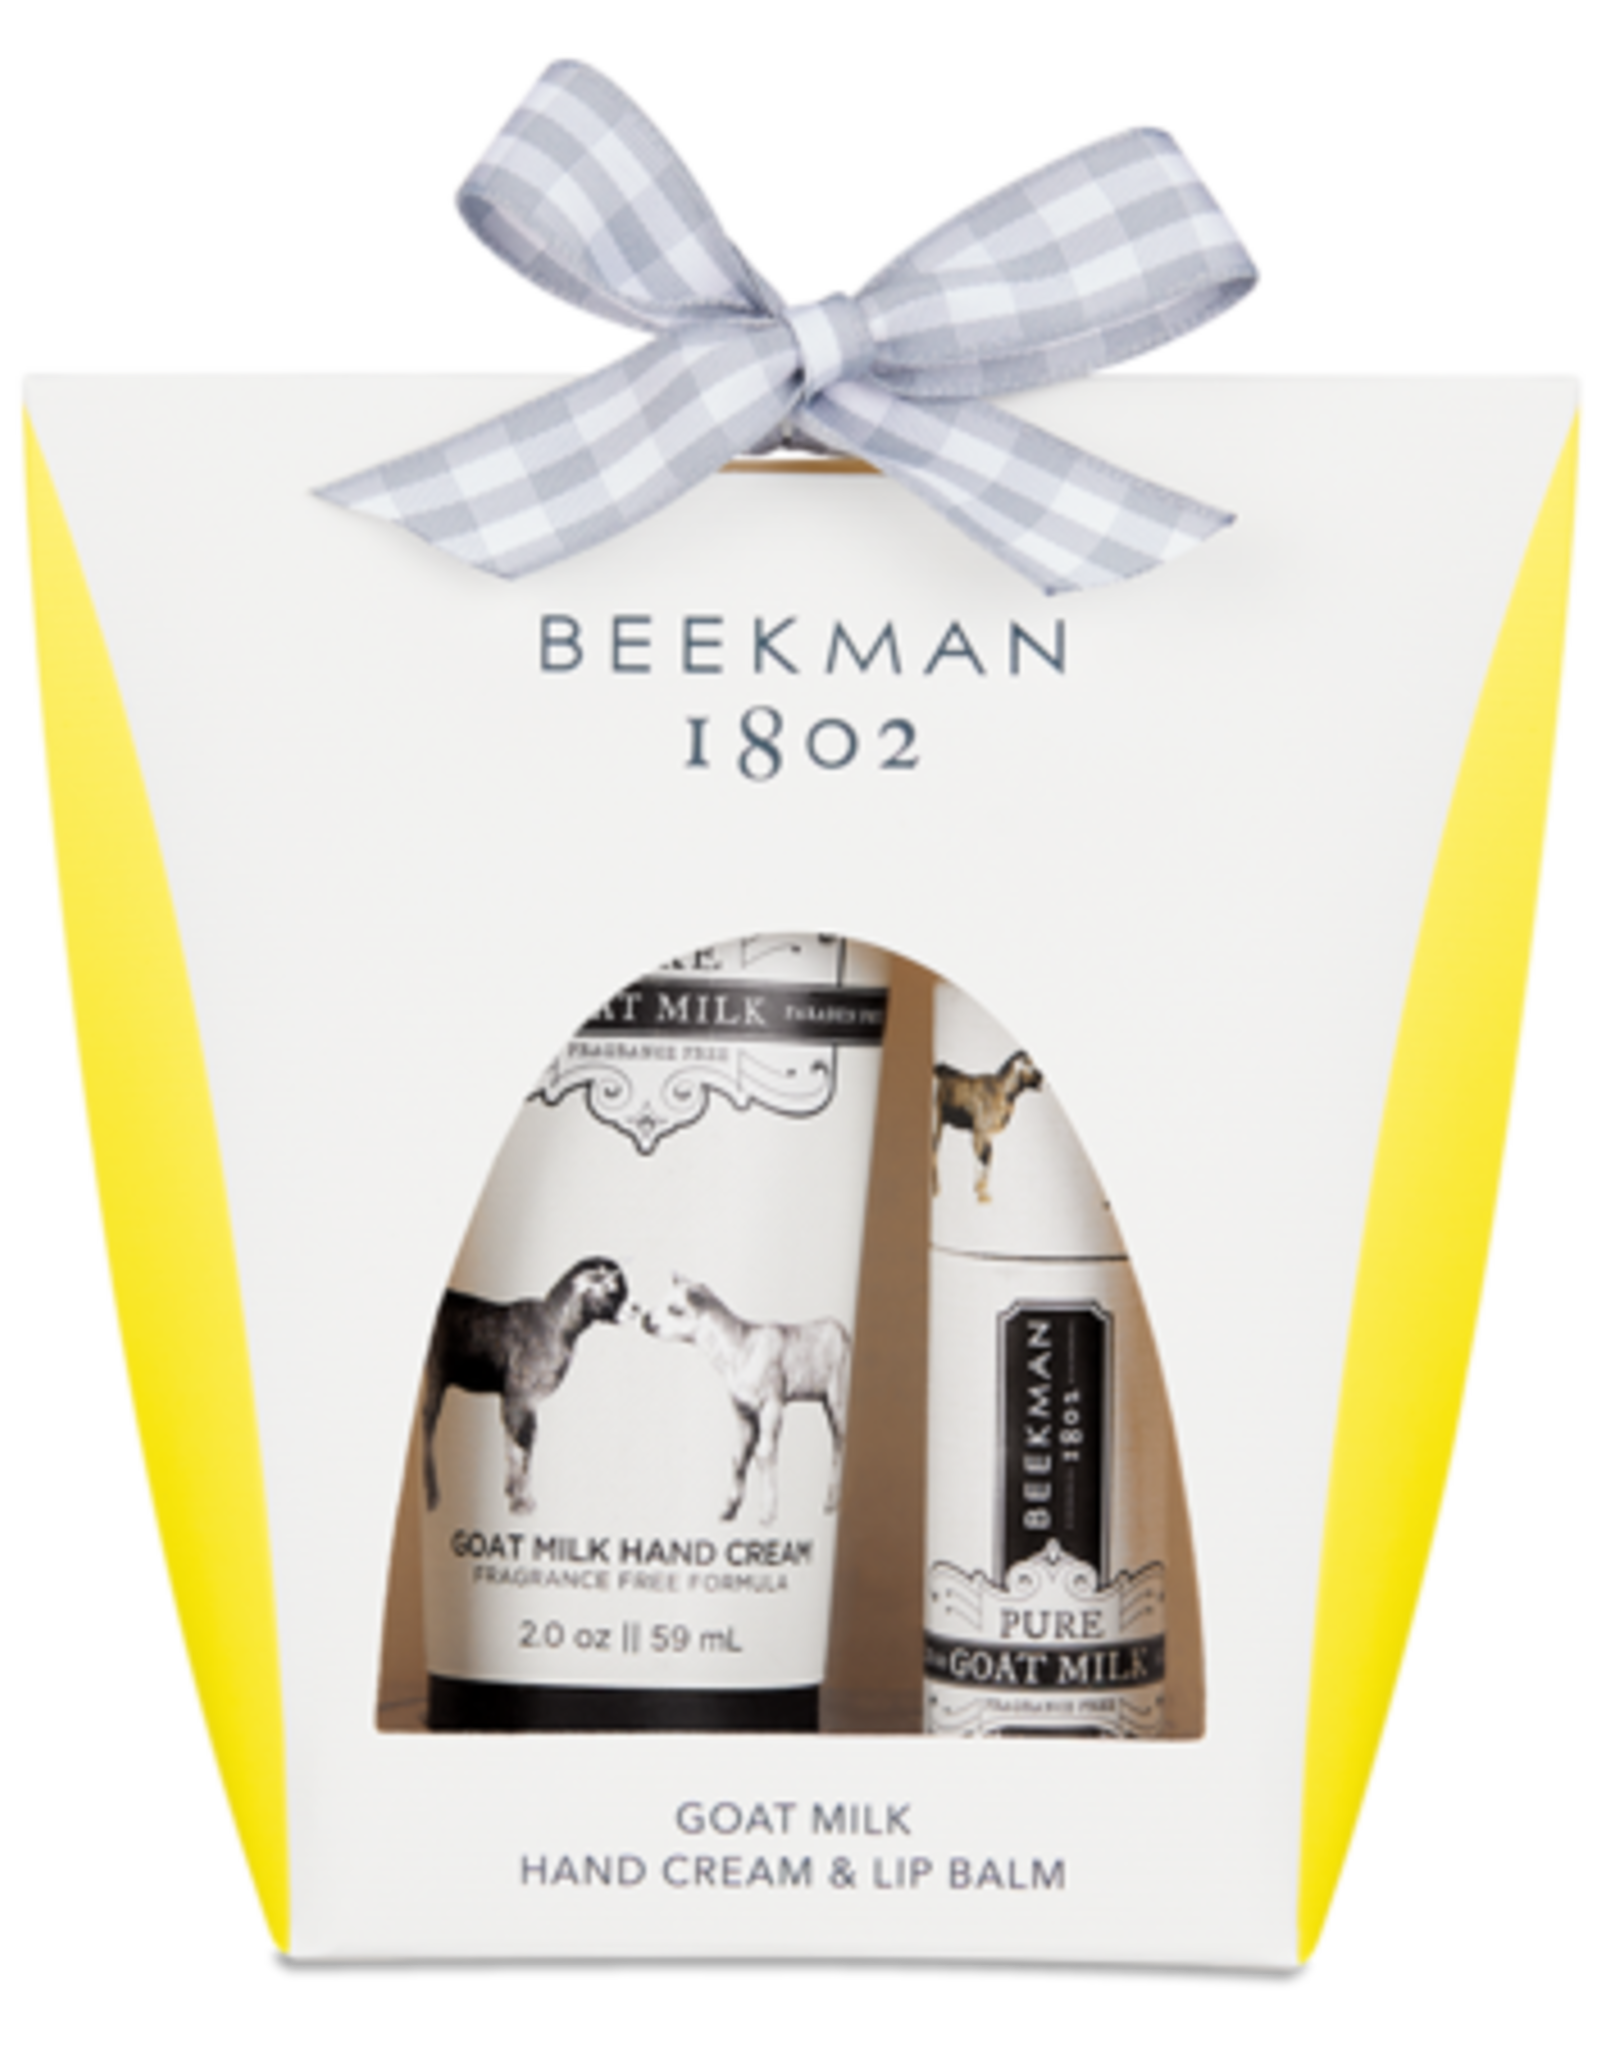 BEEKMAN 1802 Pure Hand & Lip Hydration Kit